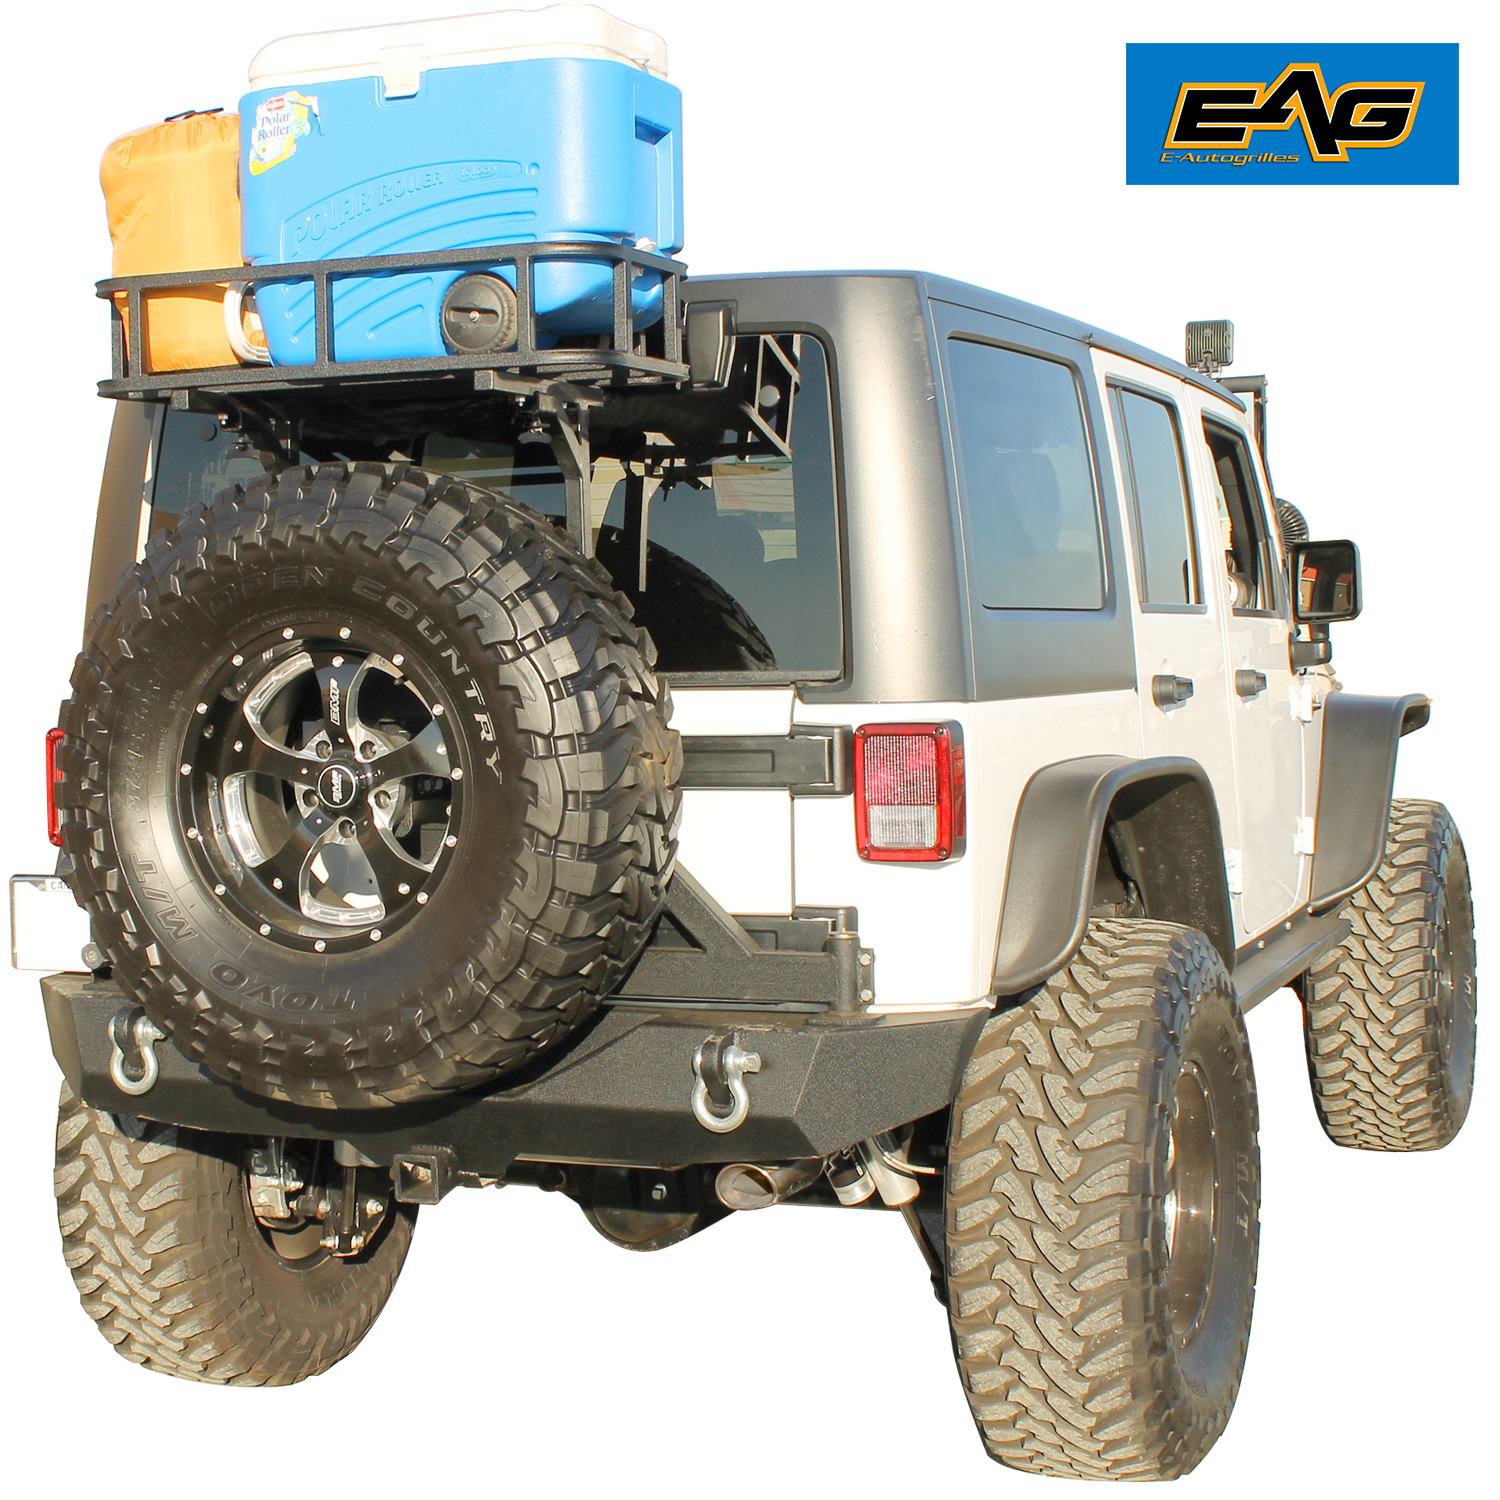 Steel Rear Cargo Basket With Mounting Plate For 87-17 Jeep